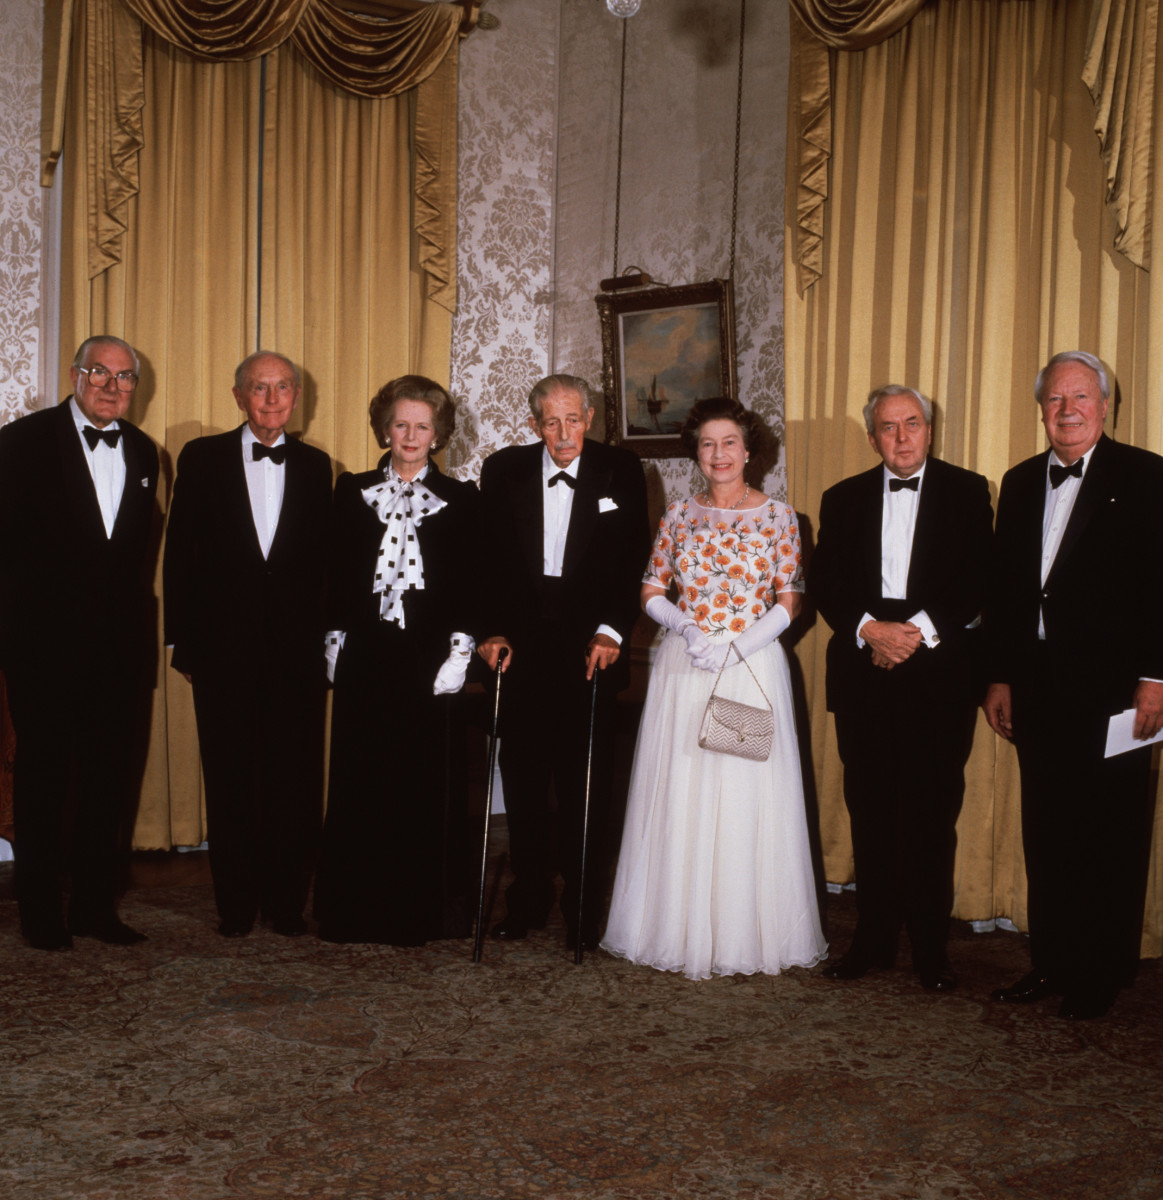 The Queen at 10 Downing Street to celebrate 250 years of it being the official residence of the British Prime Minister, with leaders past and present: (L to R) James Callaghan, Sir Alec Douglas-Home, Margaret Thatcher, Harold Macmillan Harold Wilson and Ted Heath